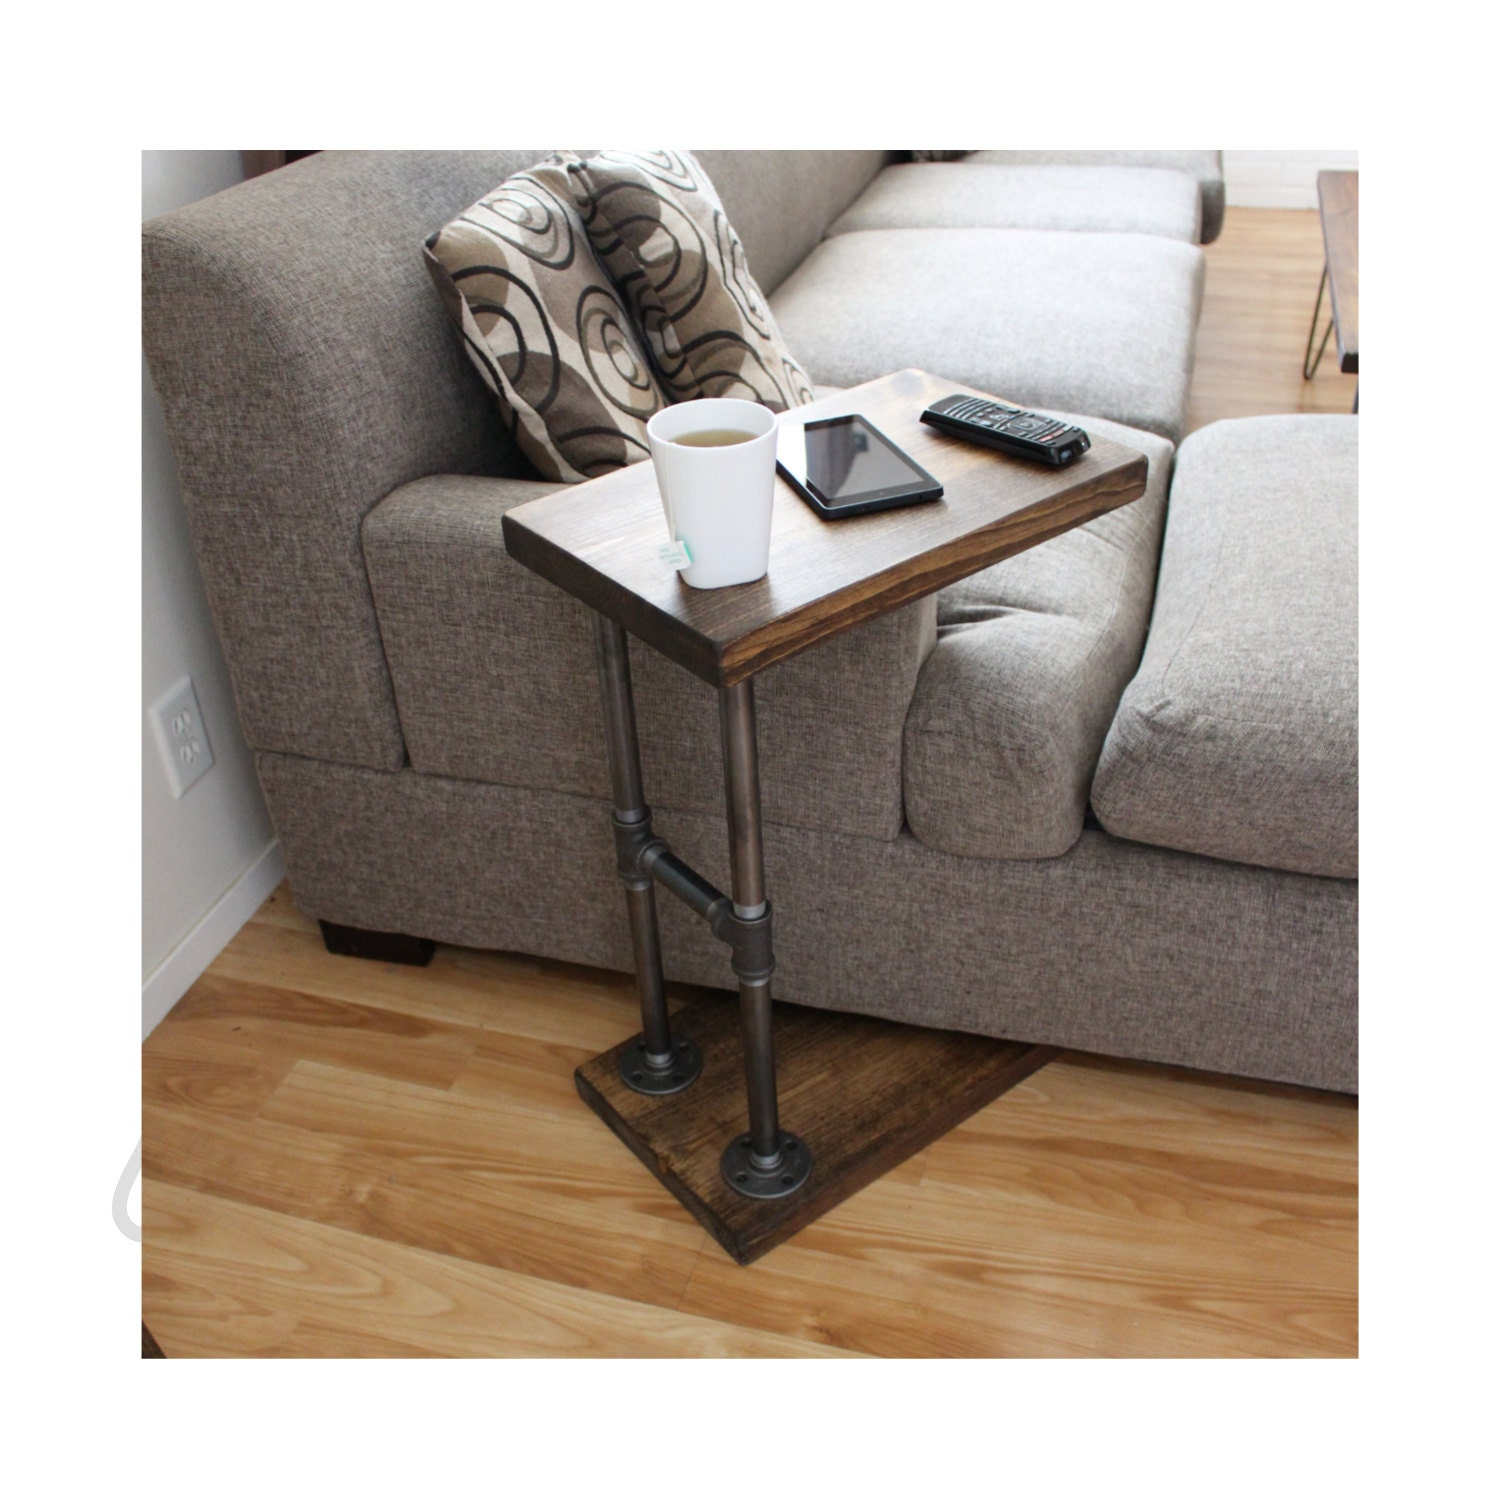 Industrial furniture coffee table side table laptop stand for Side table for sectional sofa